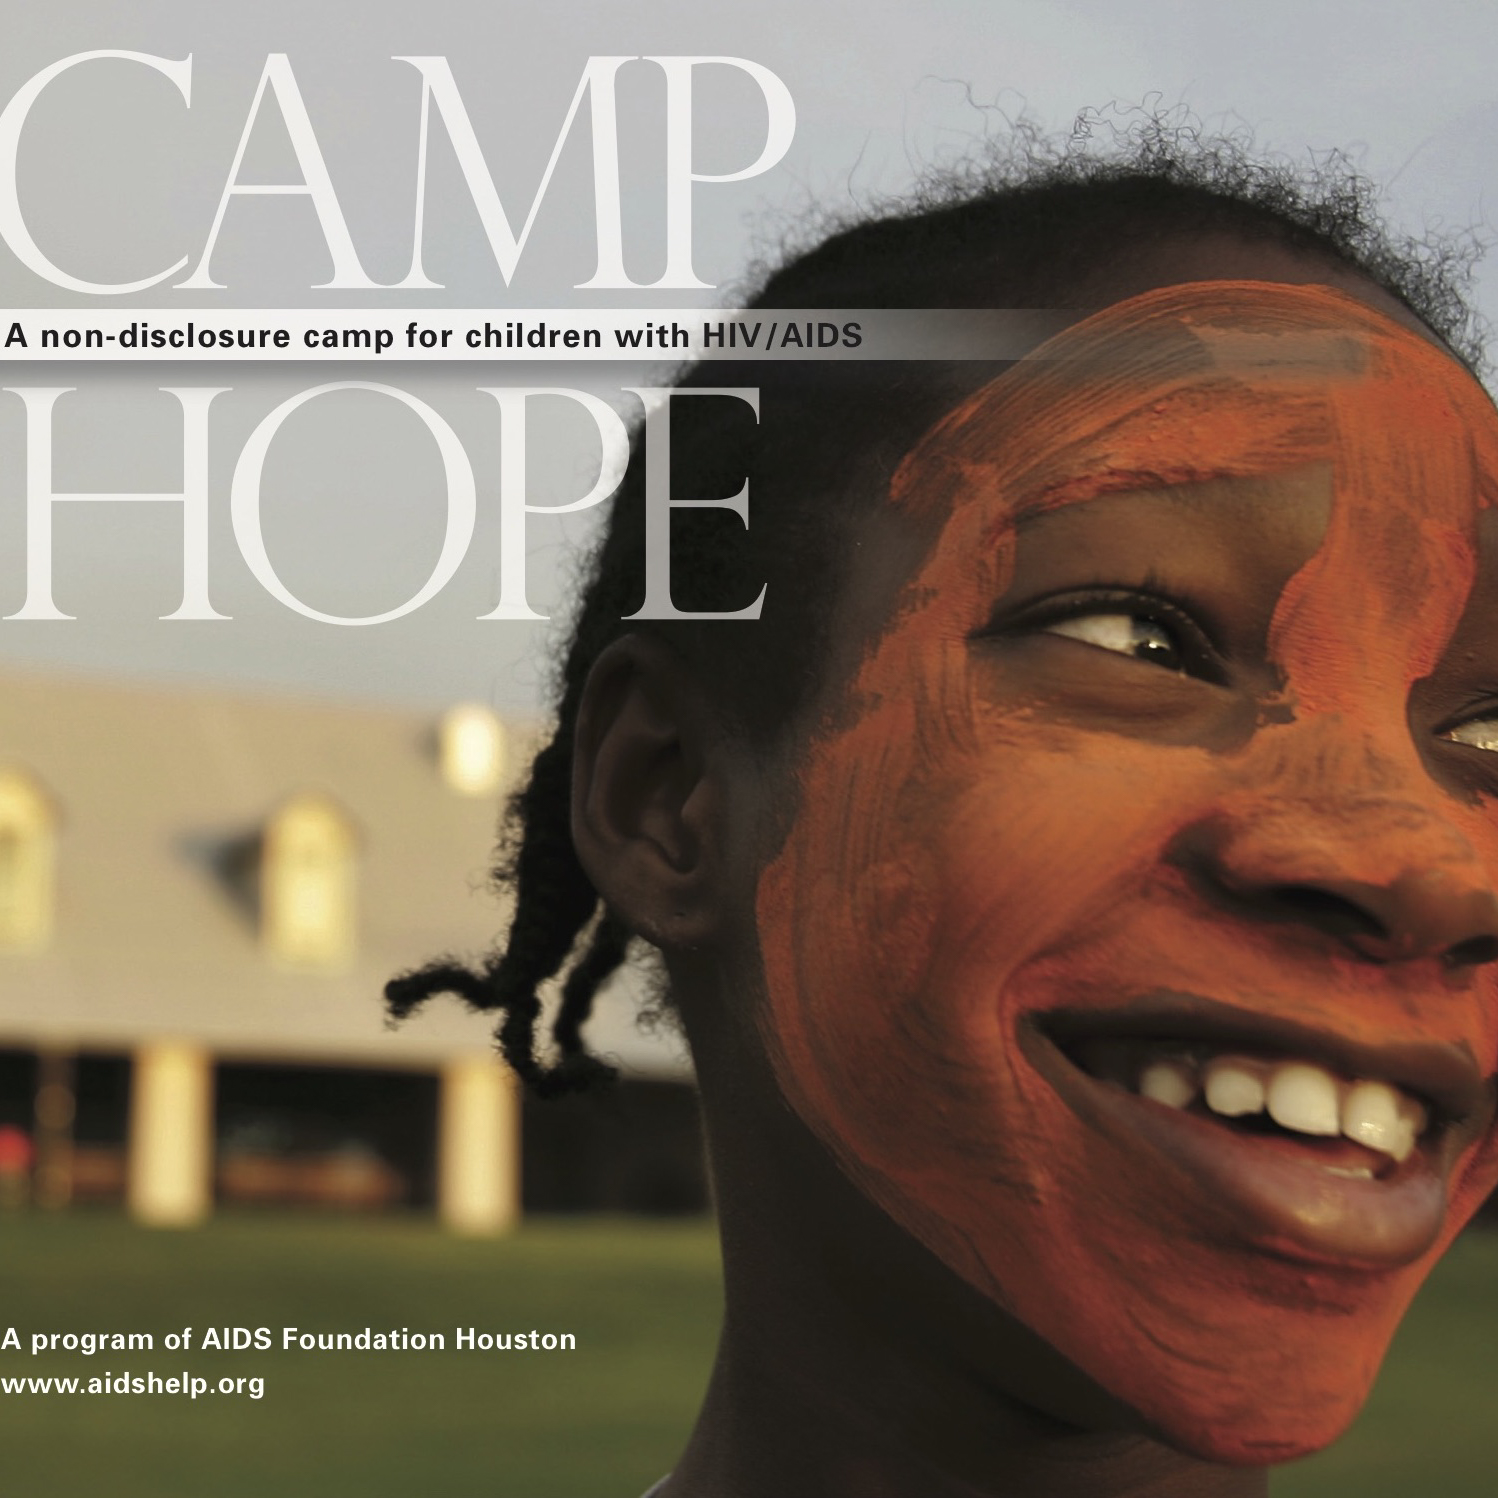 Camp Hope Video Script & CD Cover 2011